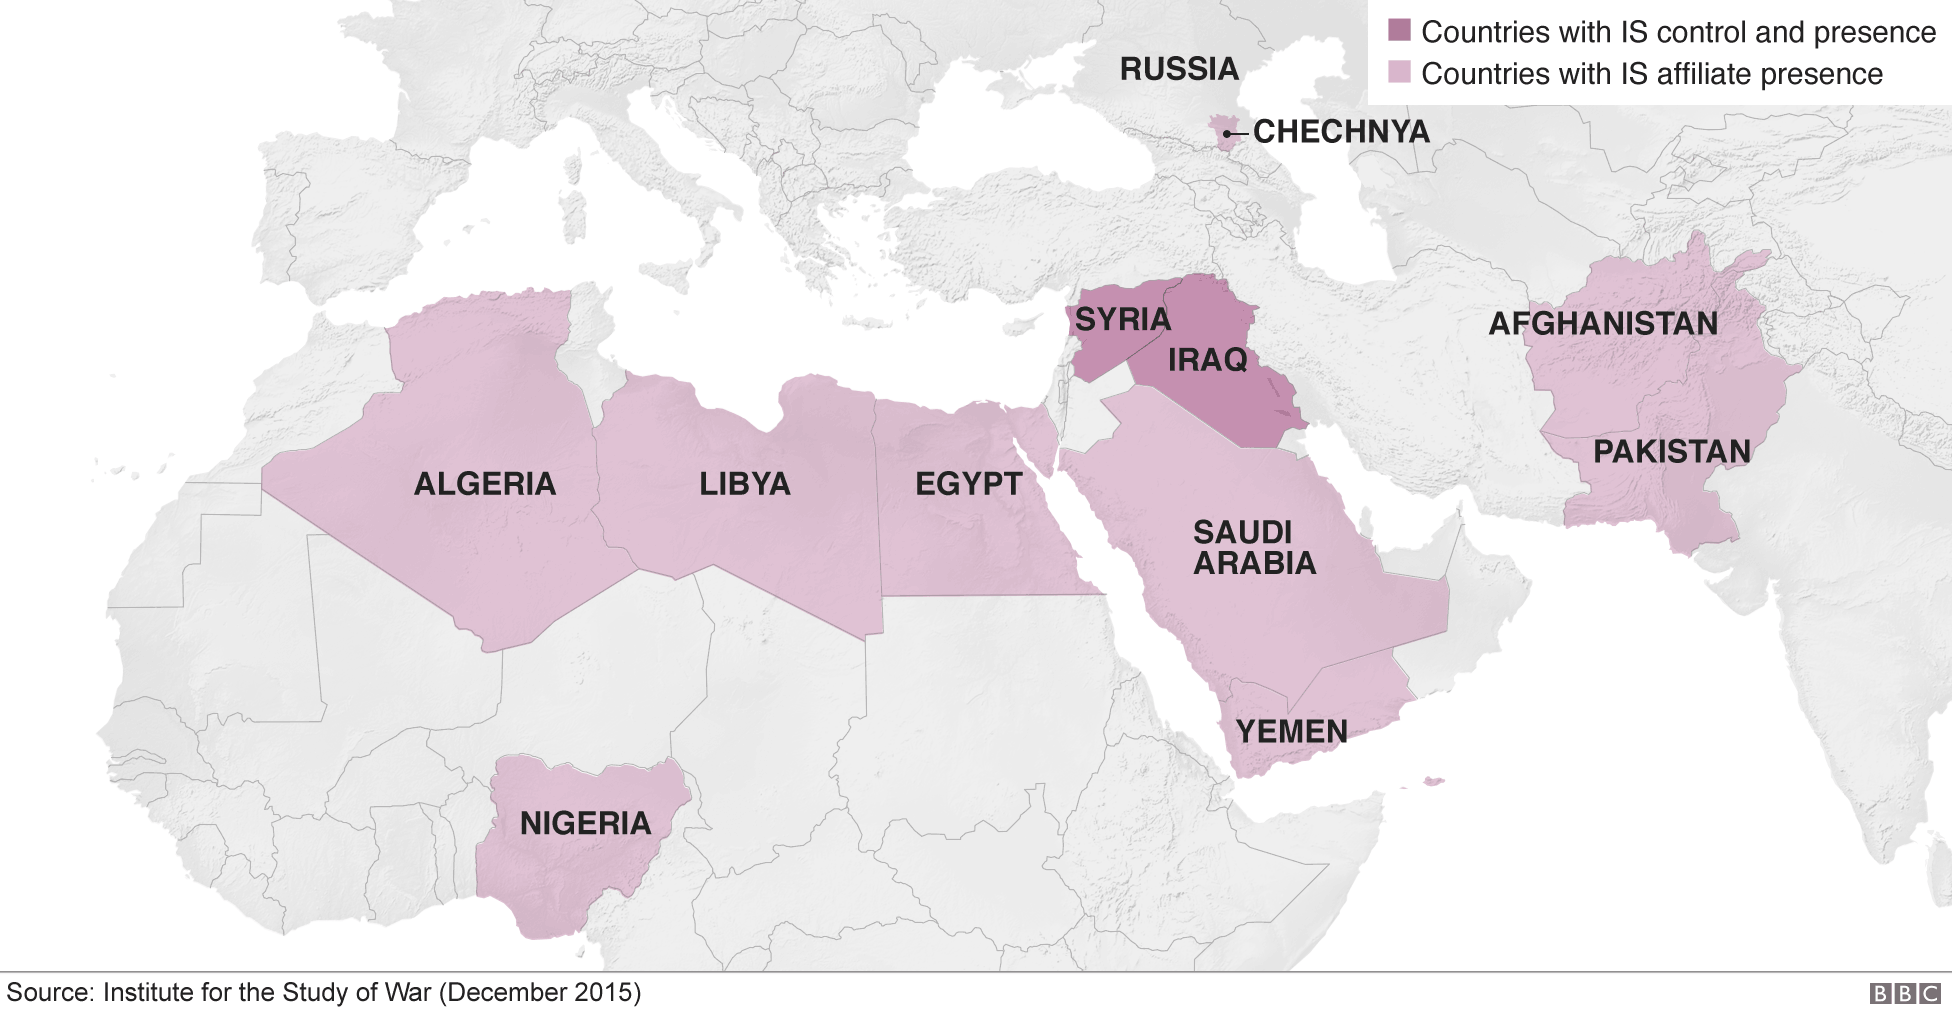 Map showing countries with IS affiliates